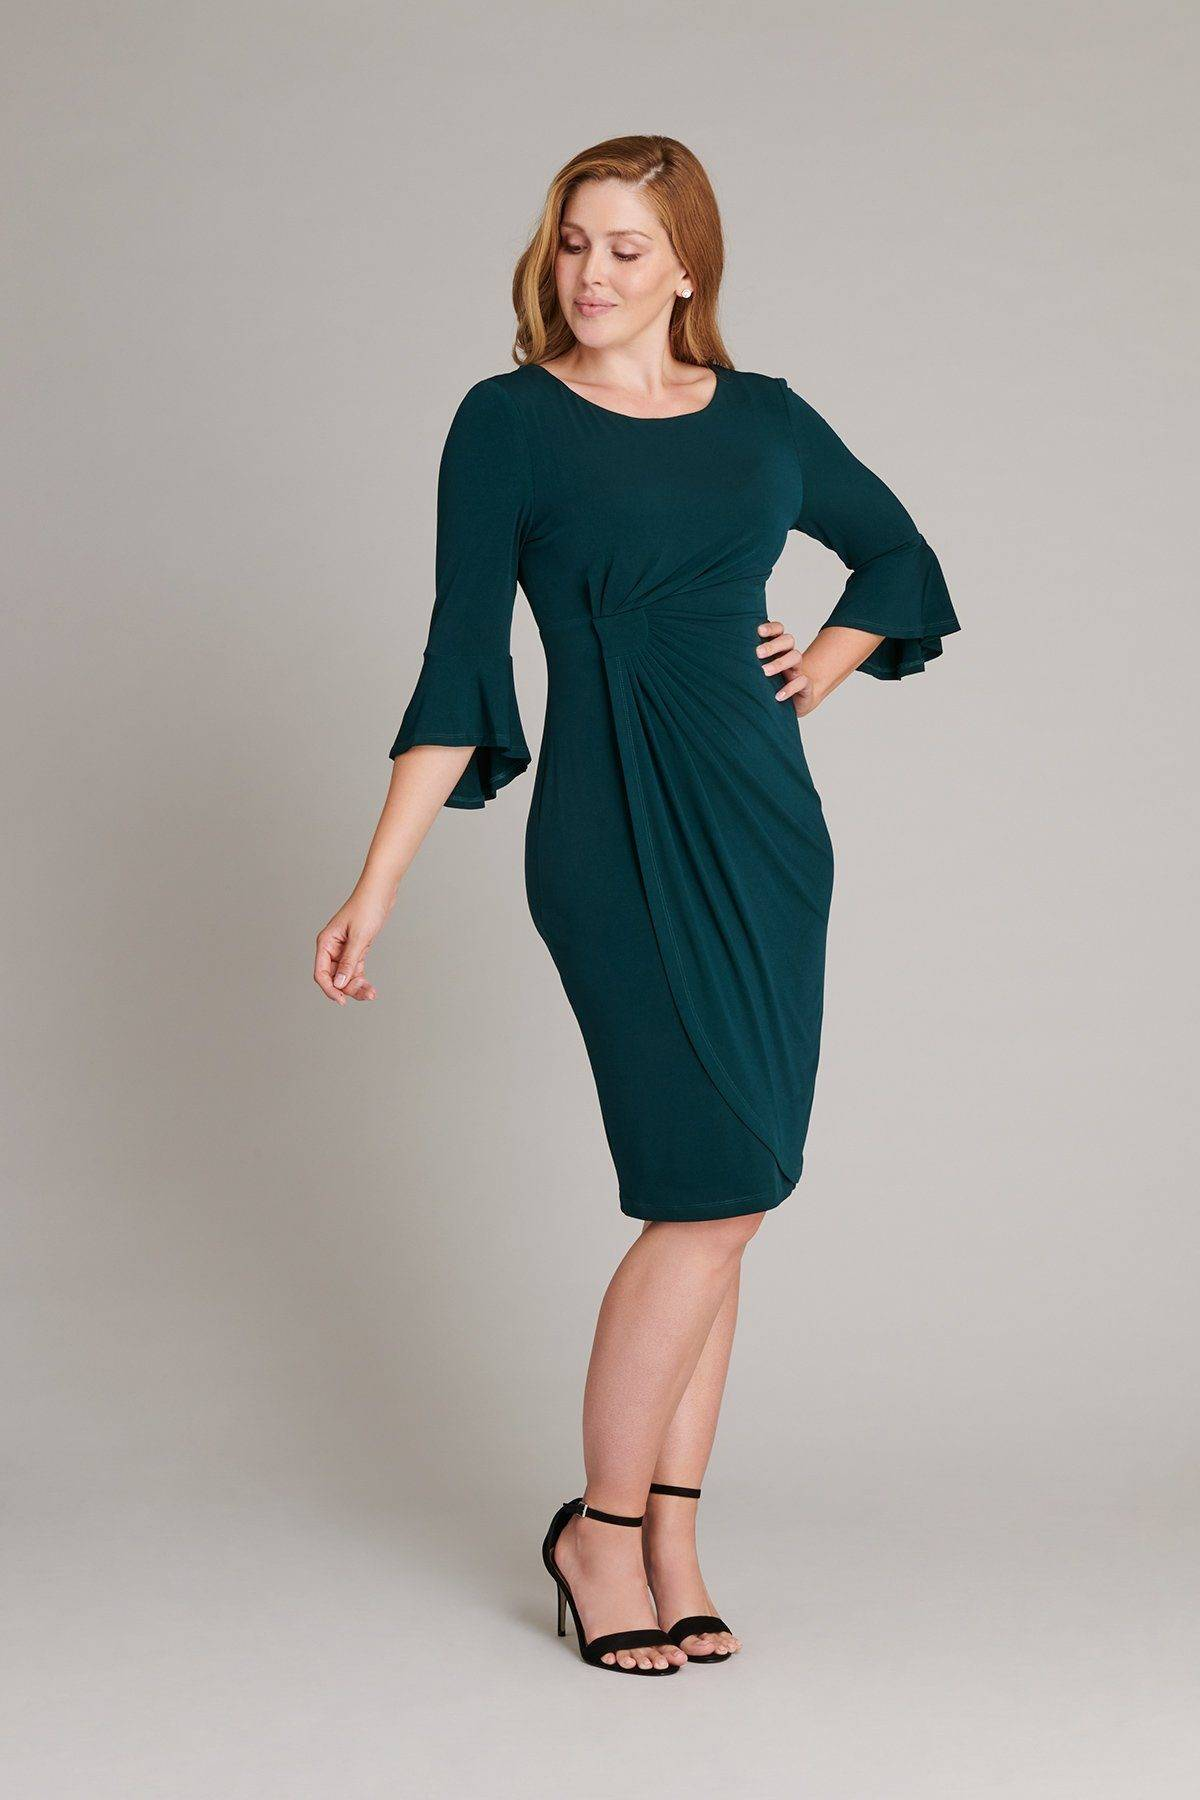 green-long-sleeve-dress-teal-wrap-womens-connected-apparel